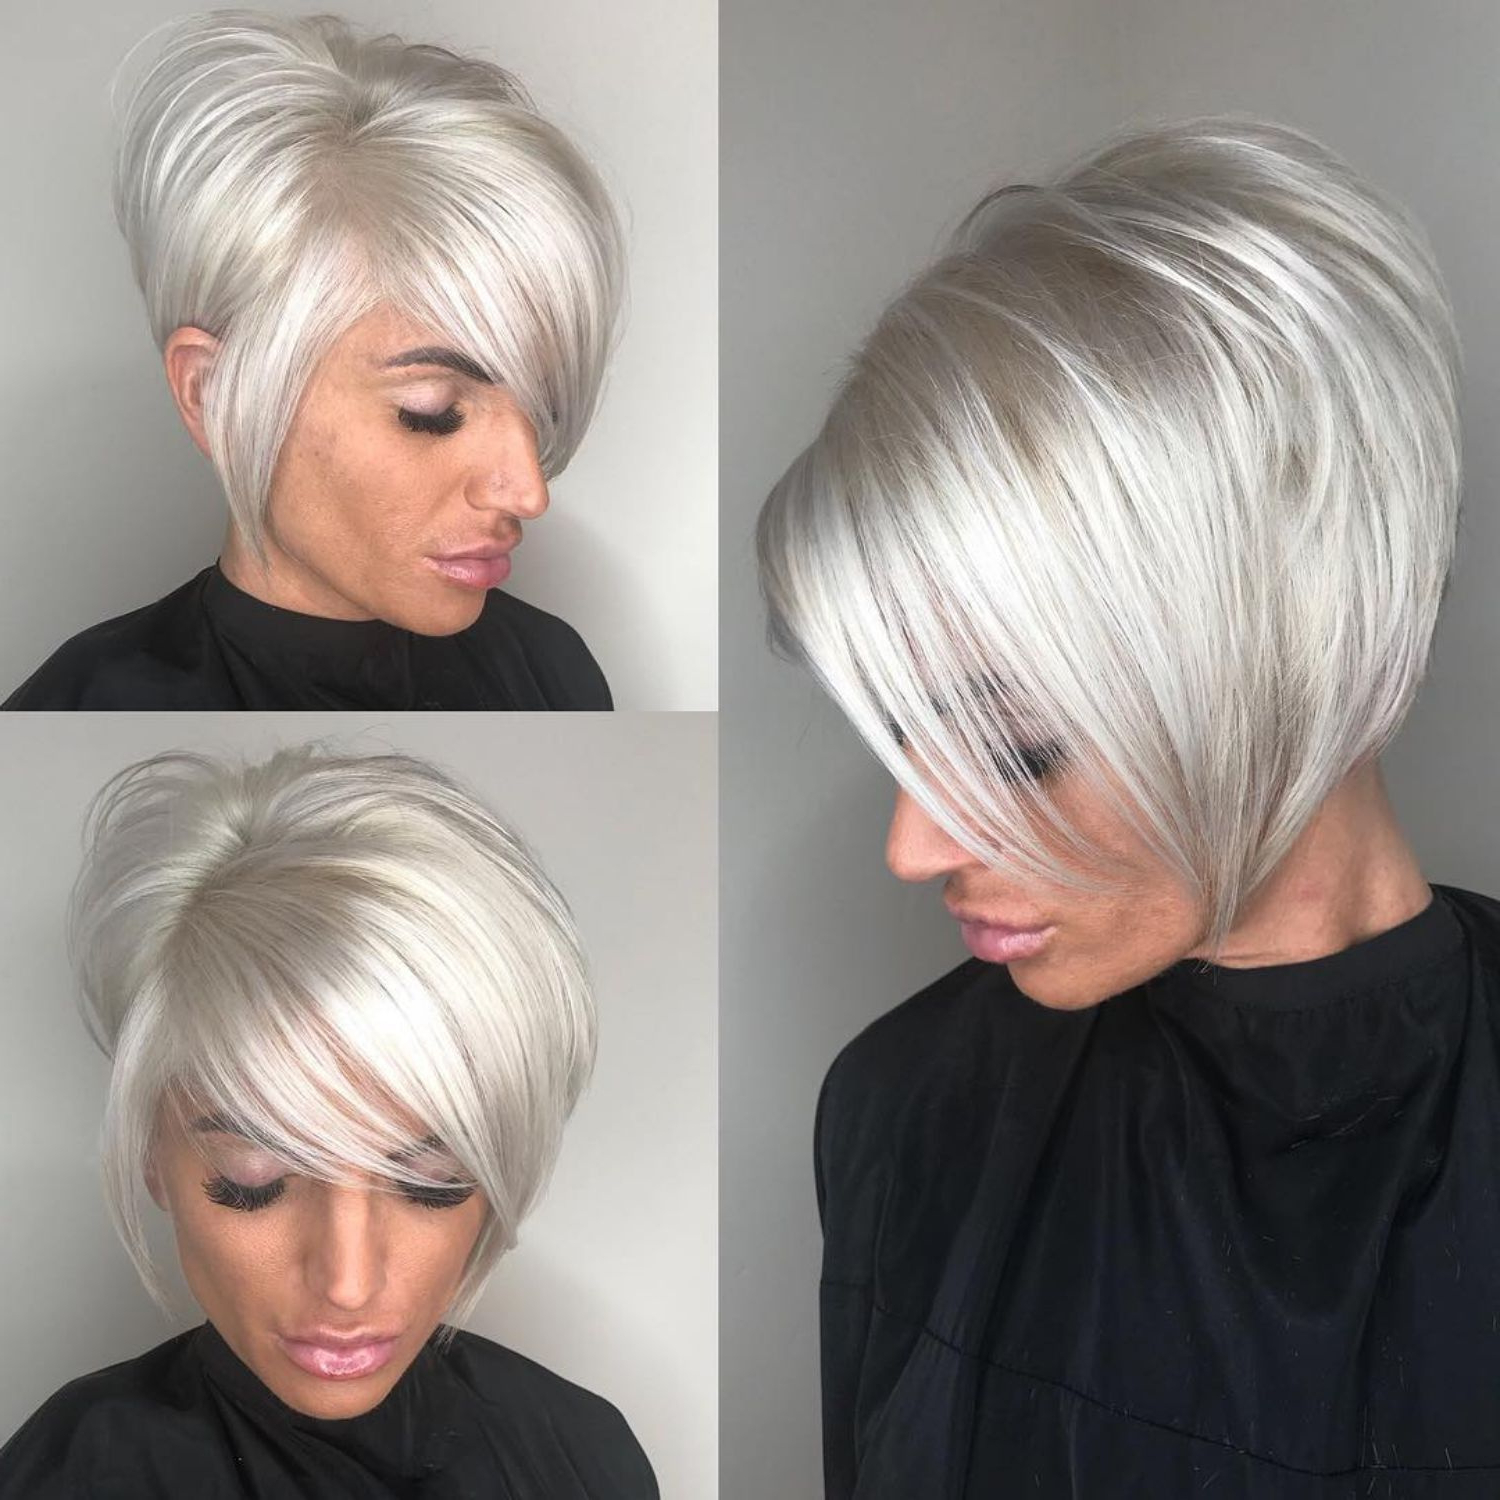 Fashion : Eye Popping Choppy Side Parted Pixie Bob Hairstyles Pics Intended For Preferred Choppy Side Parted Bob Hairstyles (Gallery 1 of 20)